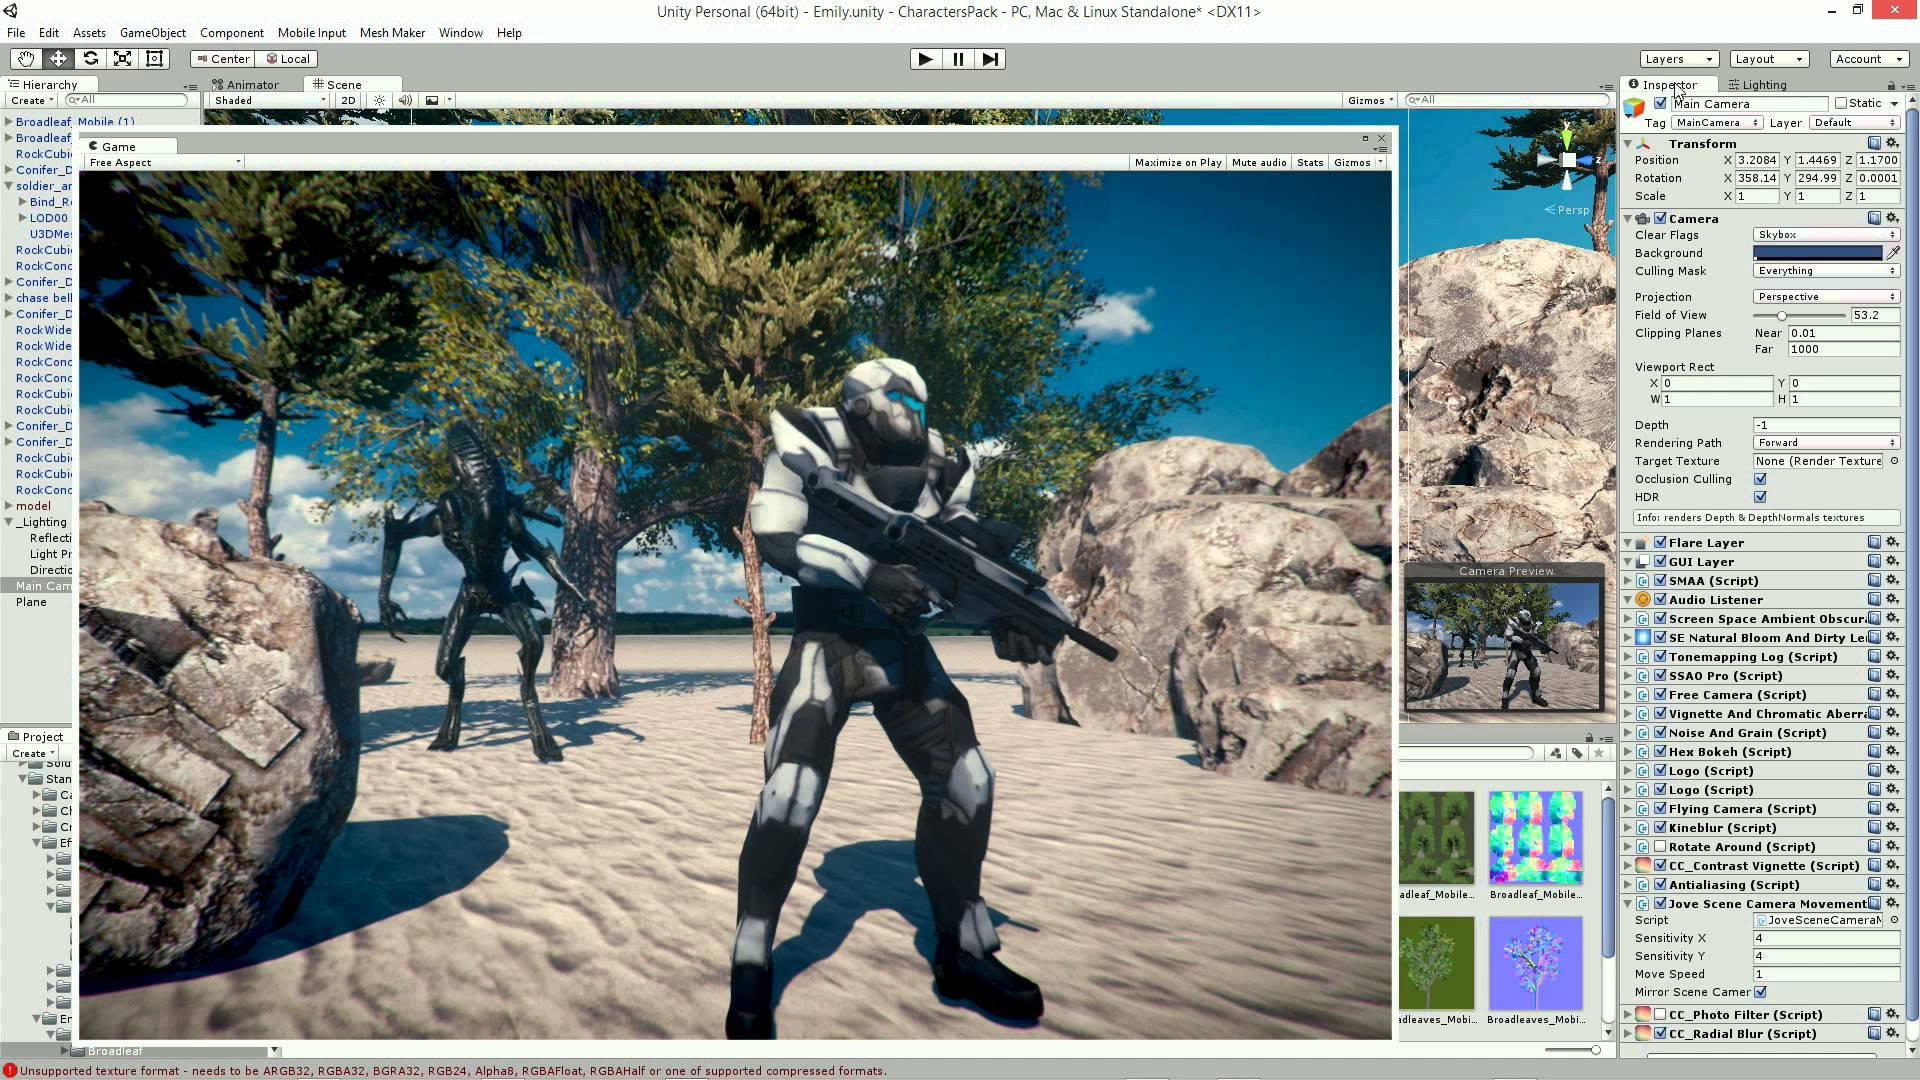 ArtStation - MGD Films - Unity 5, Dont Move, with Making Of